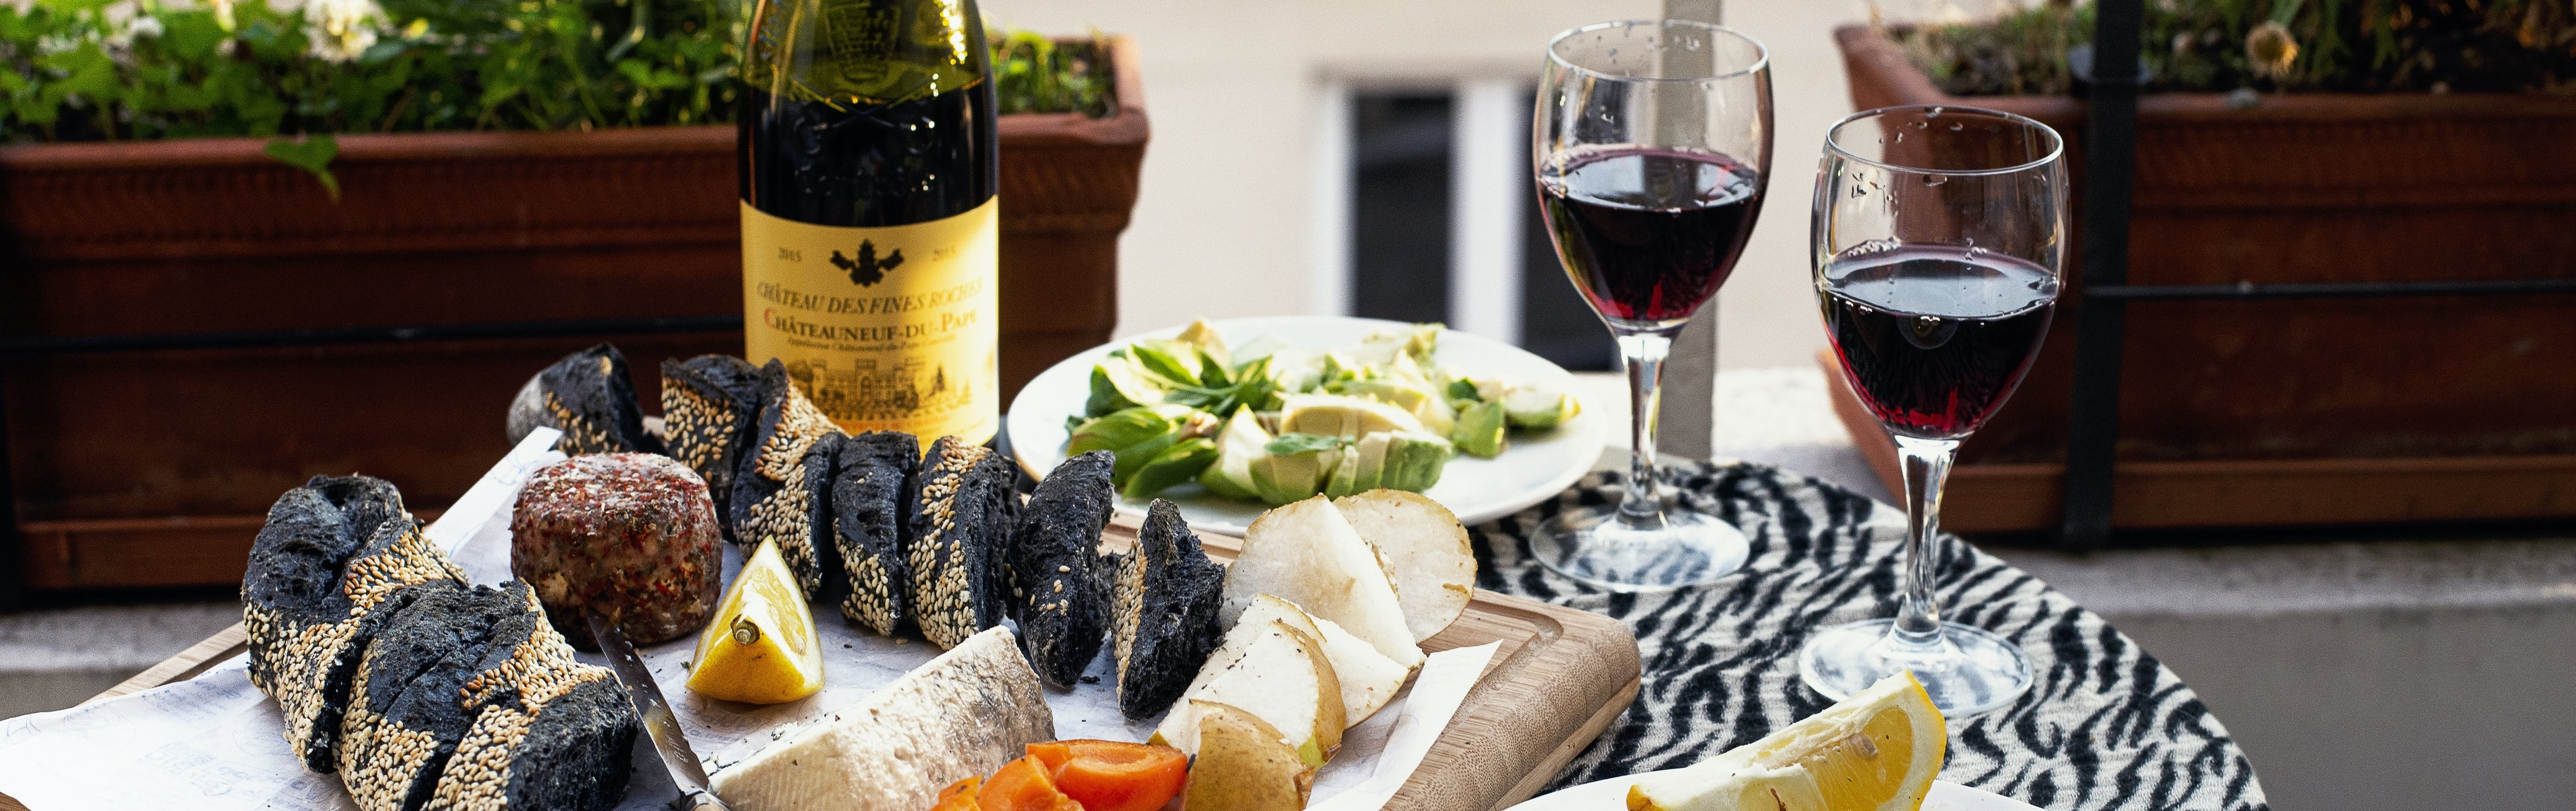 a-cheese-board-and-wine-on-a-balcony-at-sunset